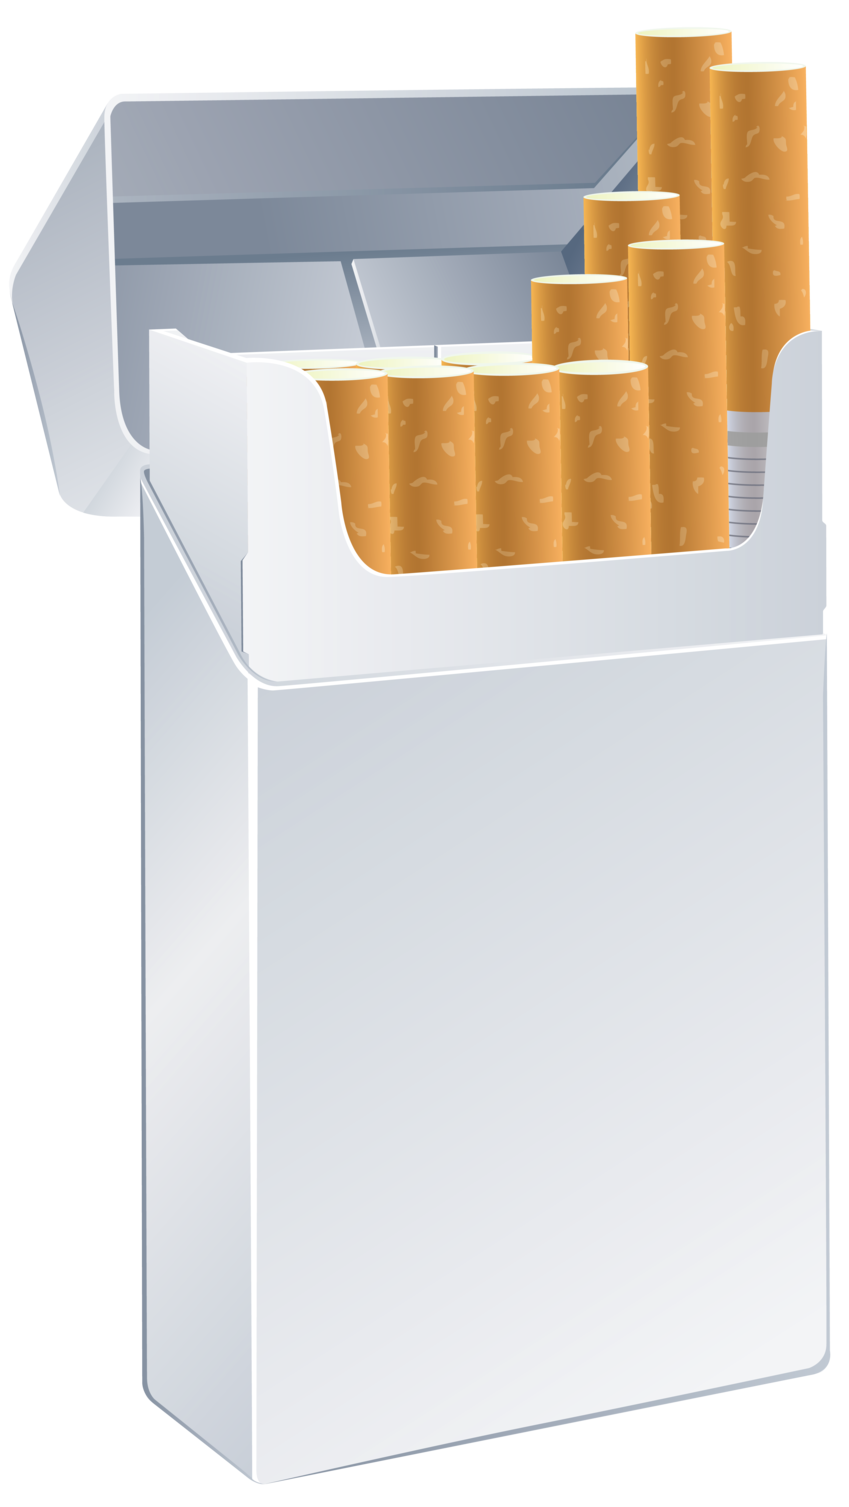 freeuse Cigarette pack clipart. Box template png